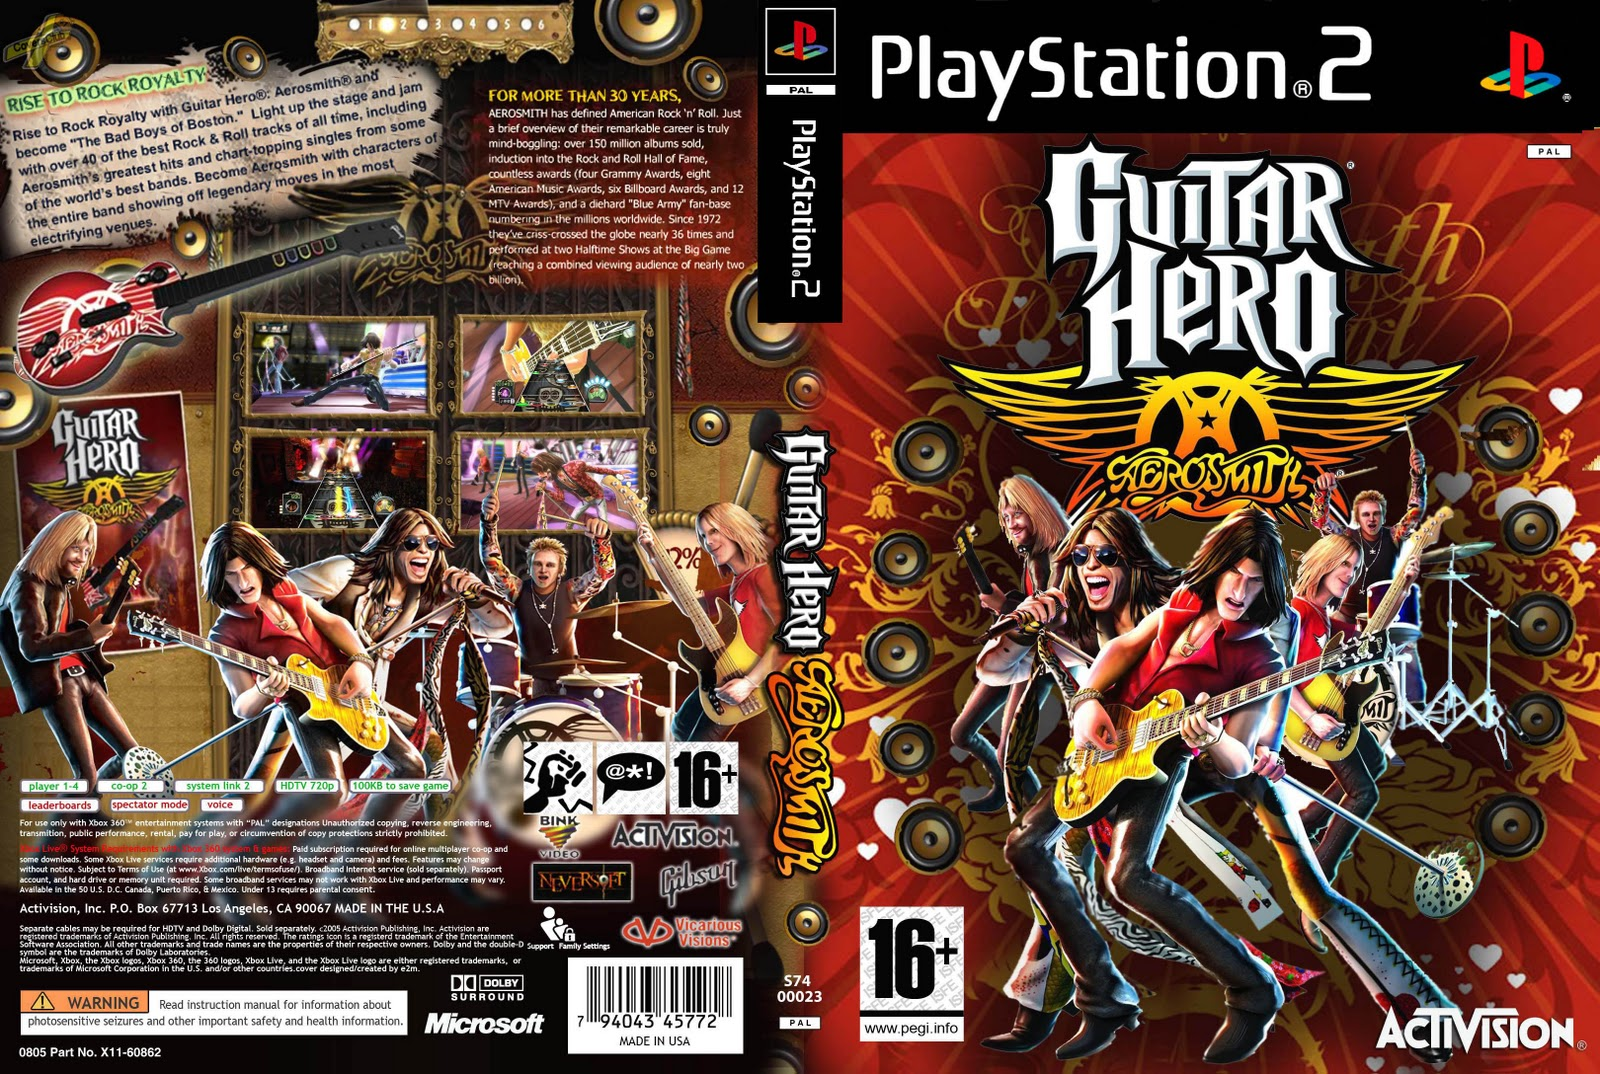 Guitar hero nude patchs hentai galleries